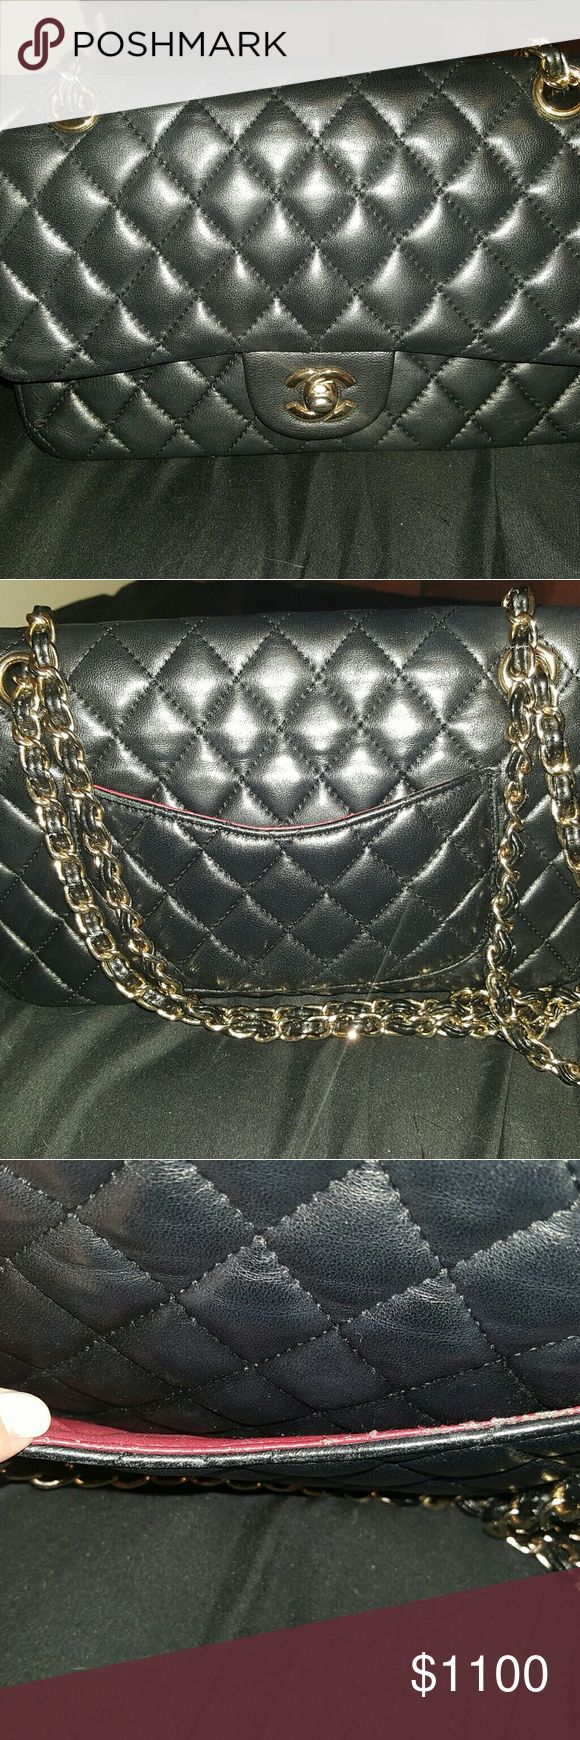 Chanel classic double flap bag black gold hardware